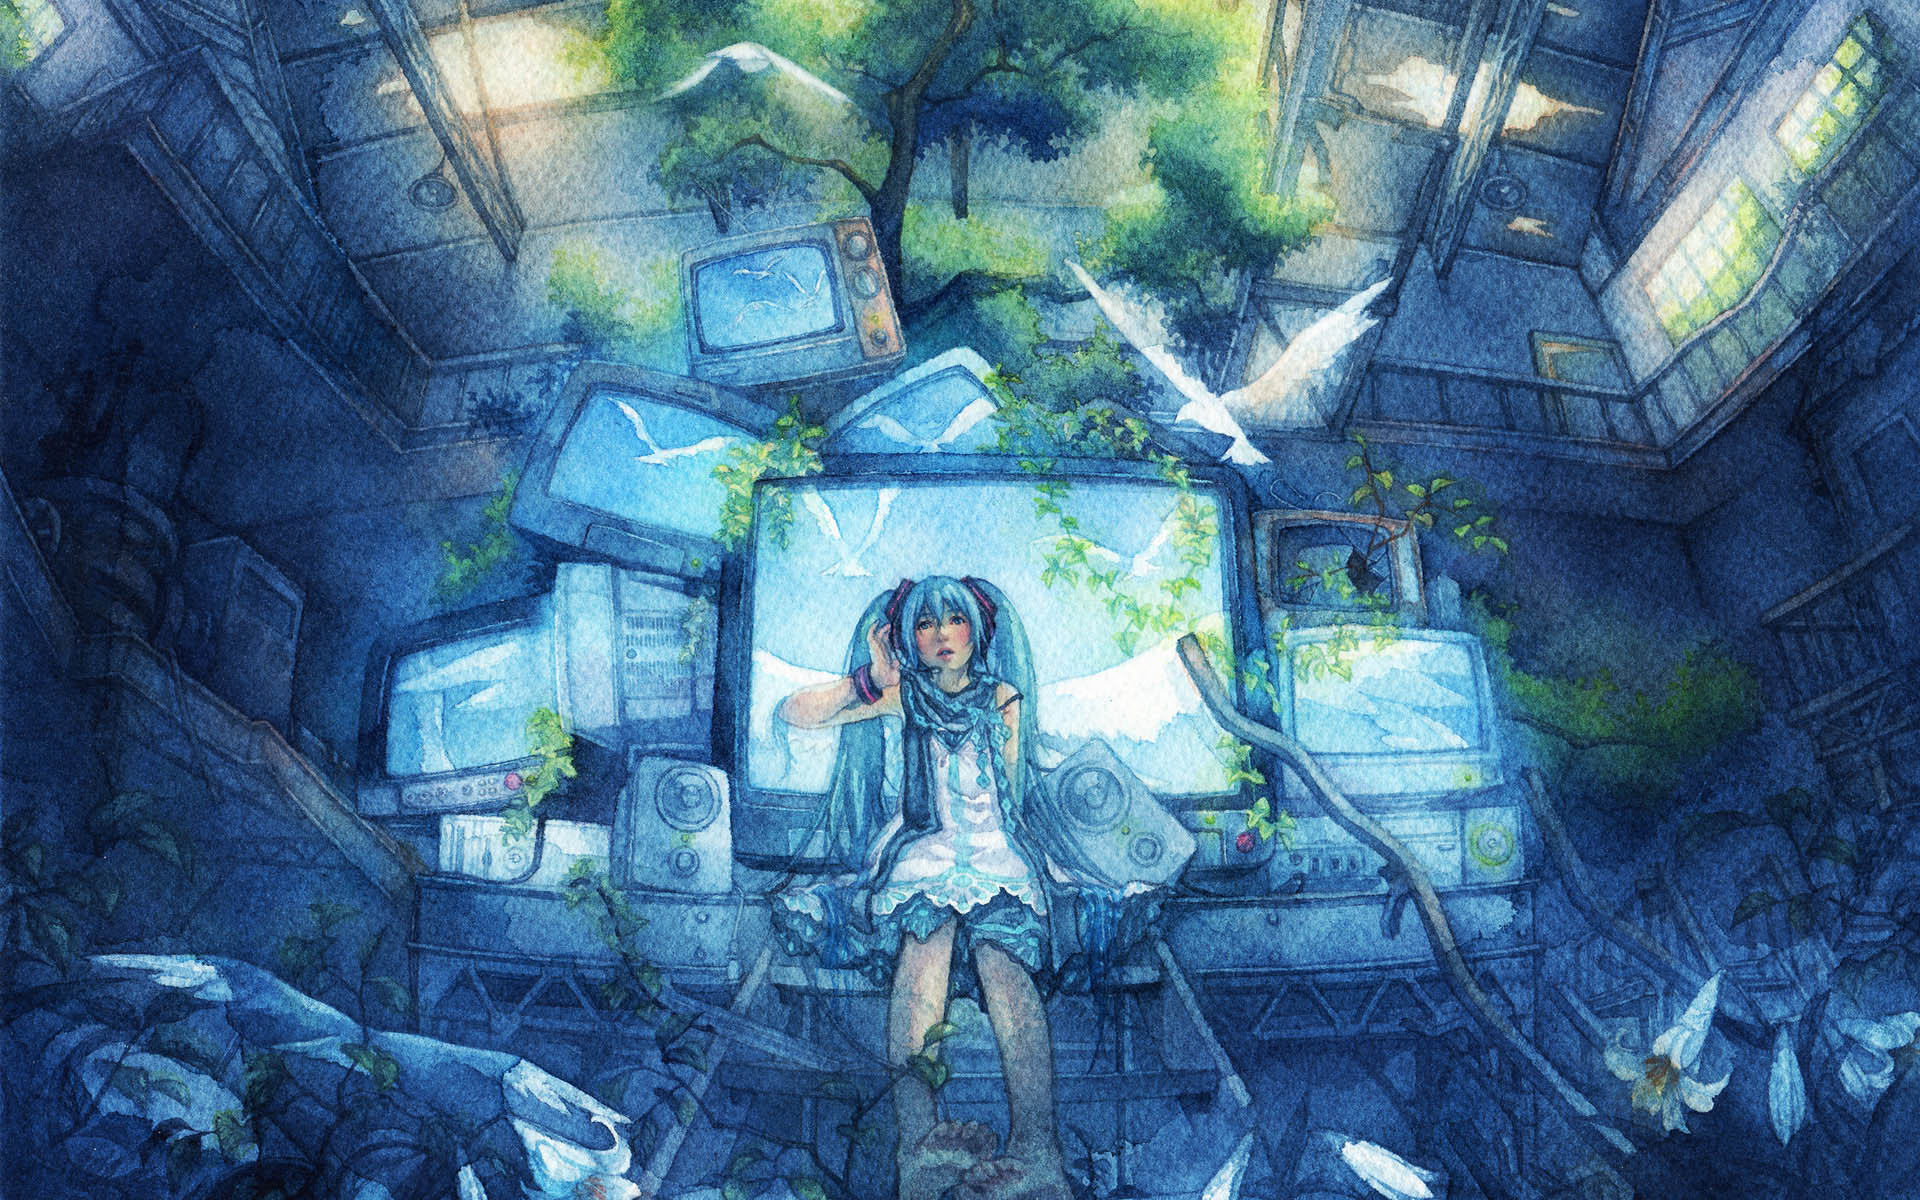 Games 3d 3b full hd wallpapers of anime wallpaper 46 jpg - Full hd anime wallpaper pack ...